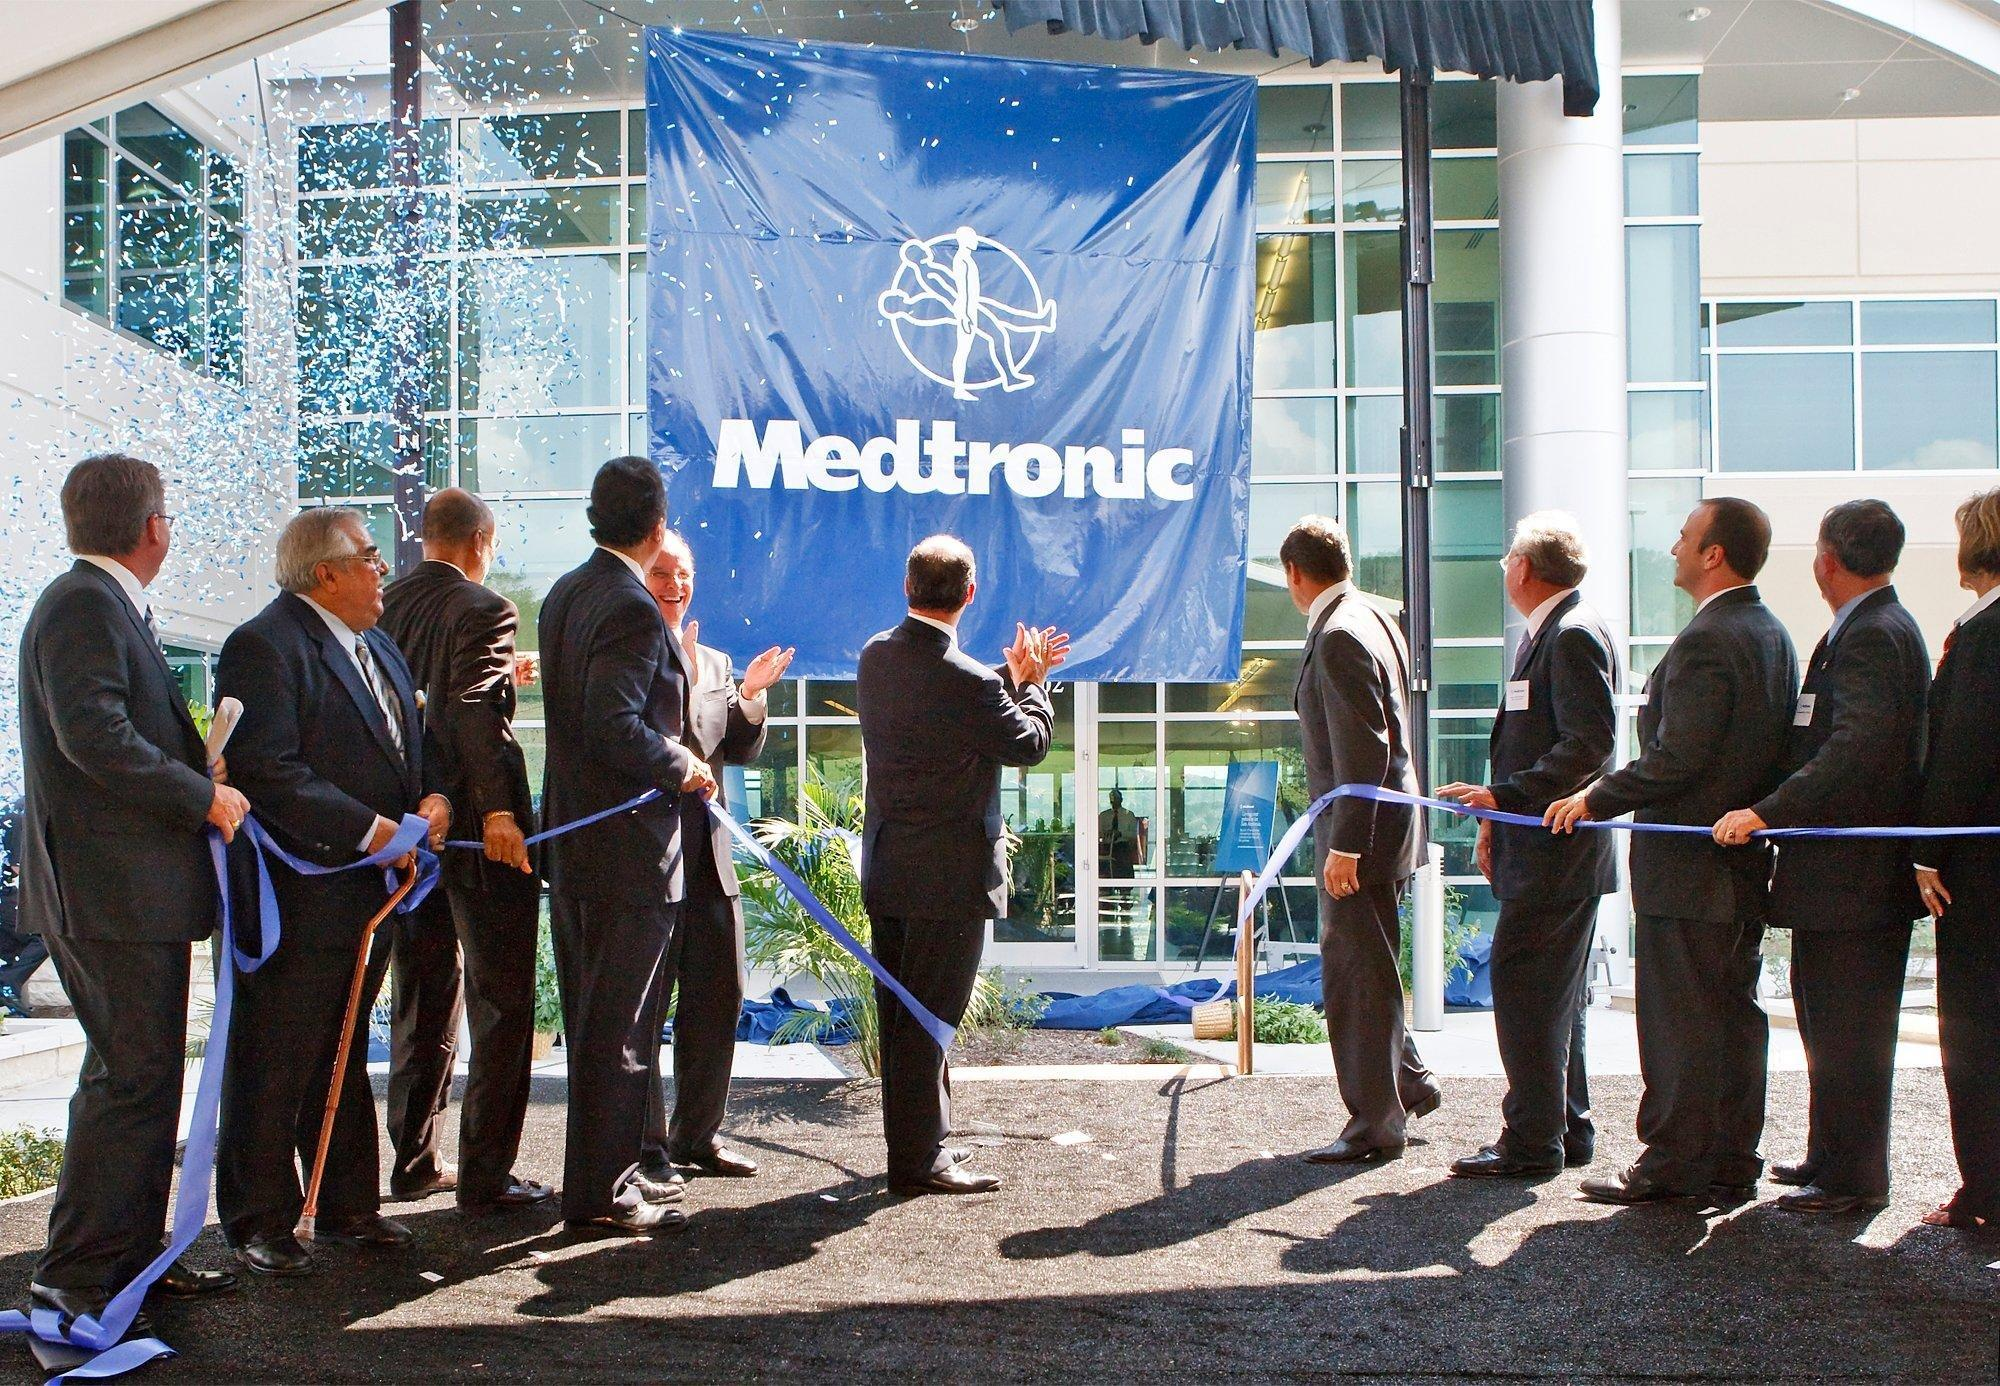 Medtronic Clothing Store